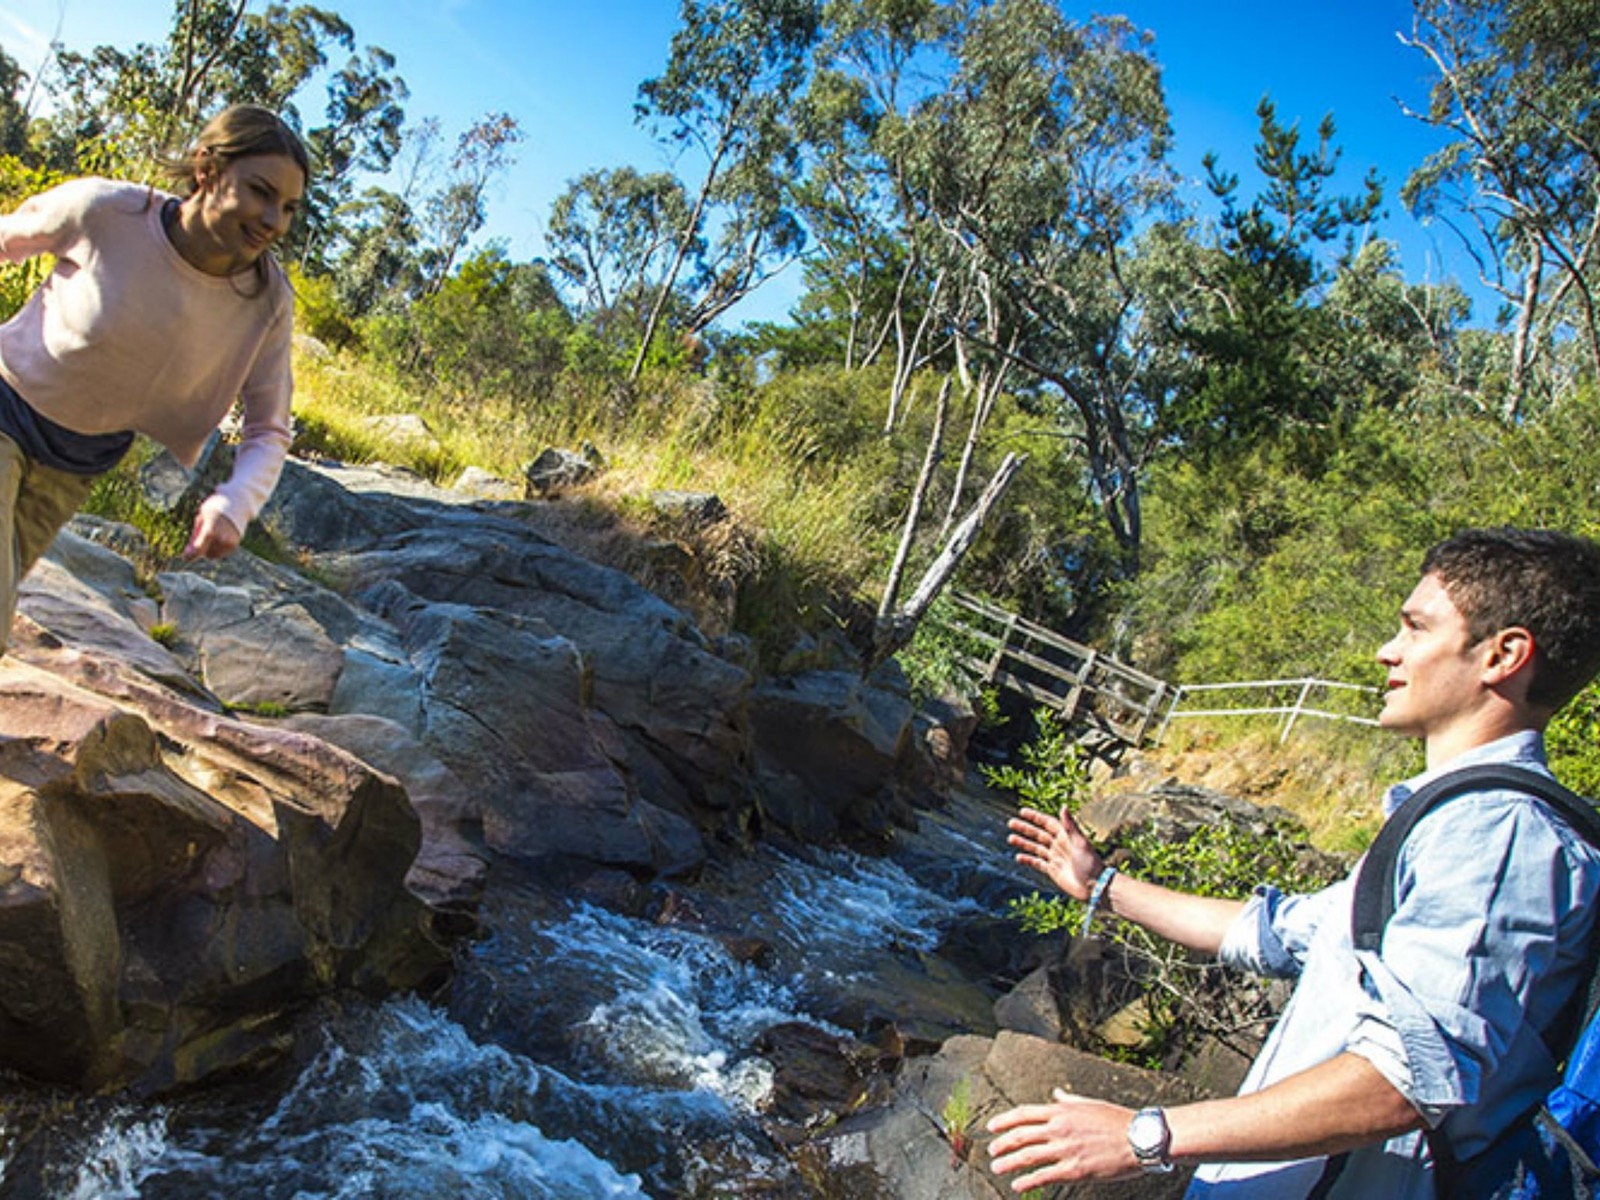 Couple at Yackandandah Gorge